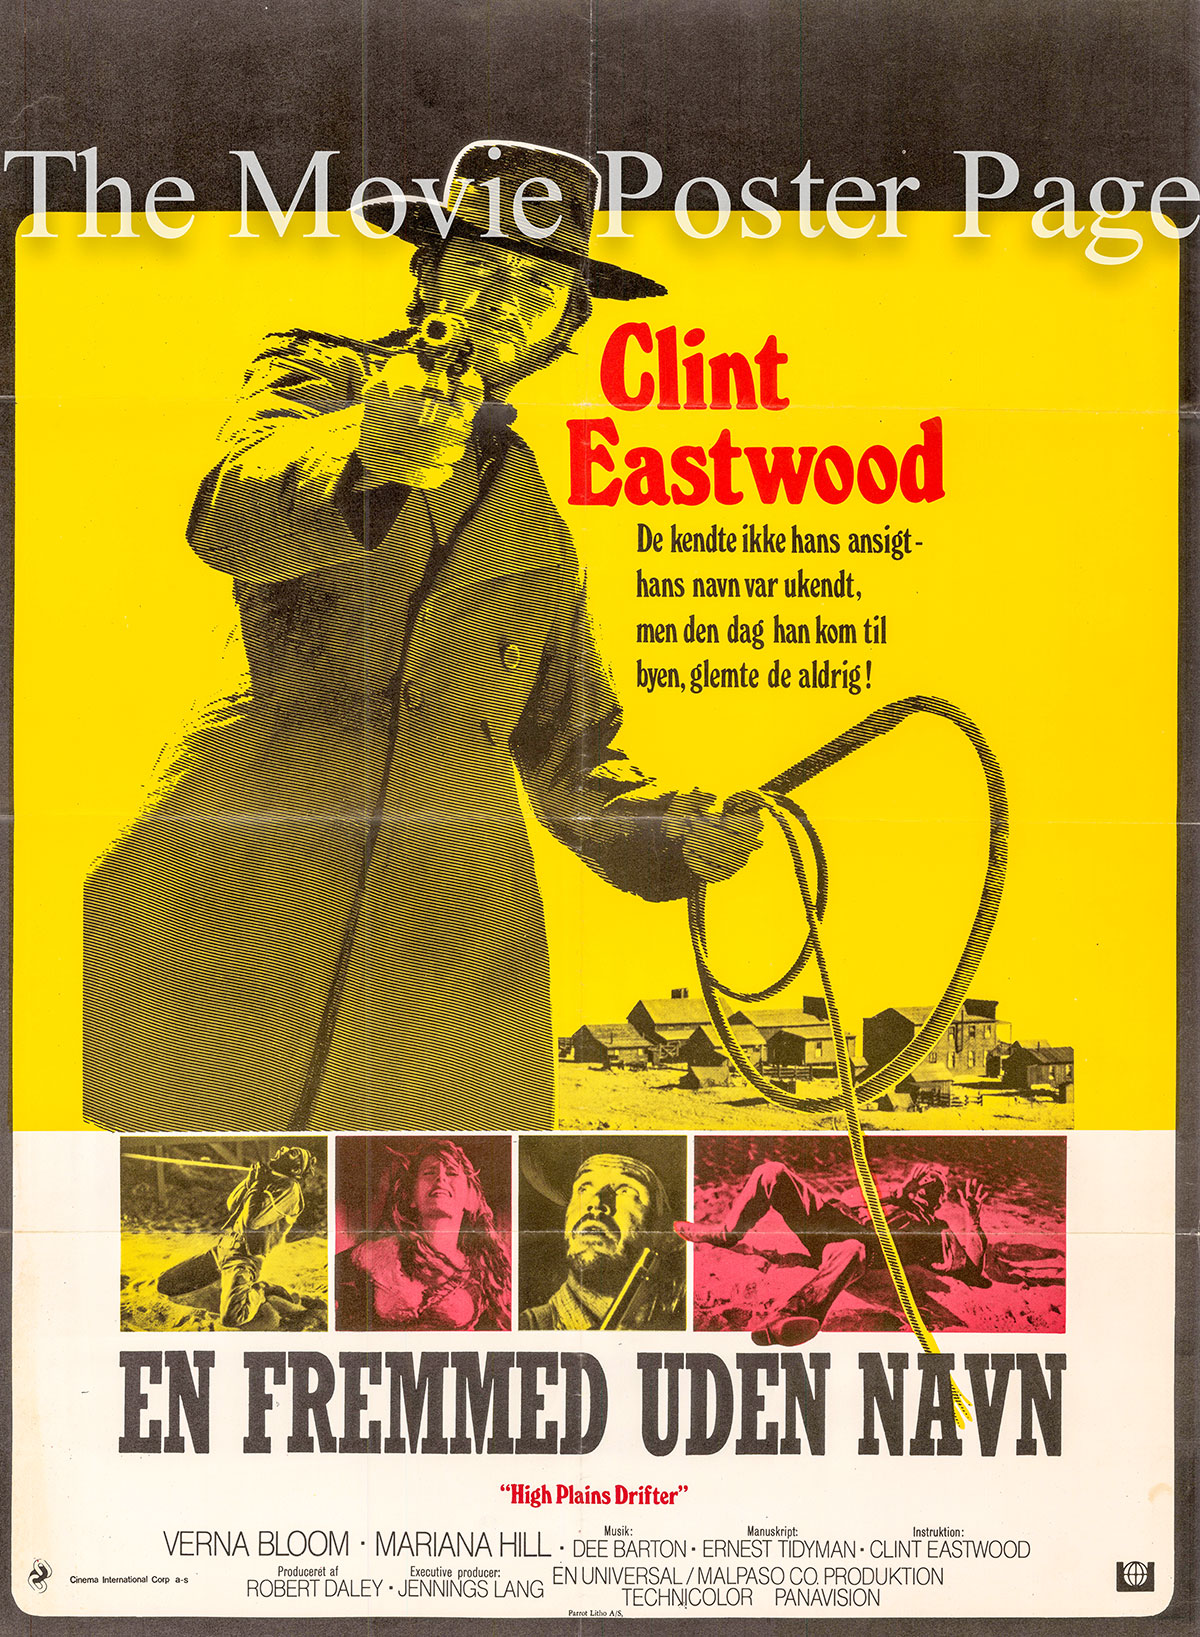 Pictured is a German one-sheet poster for the 1973 Clint EAstwood film High Plains Drifter starring Clint Eastwood.